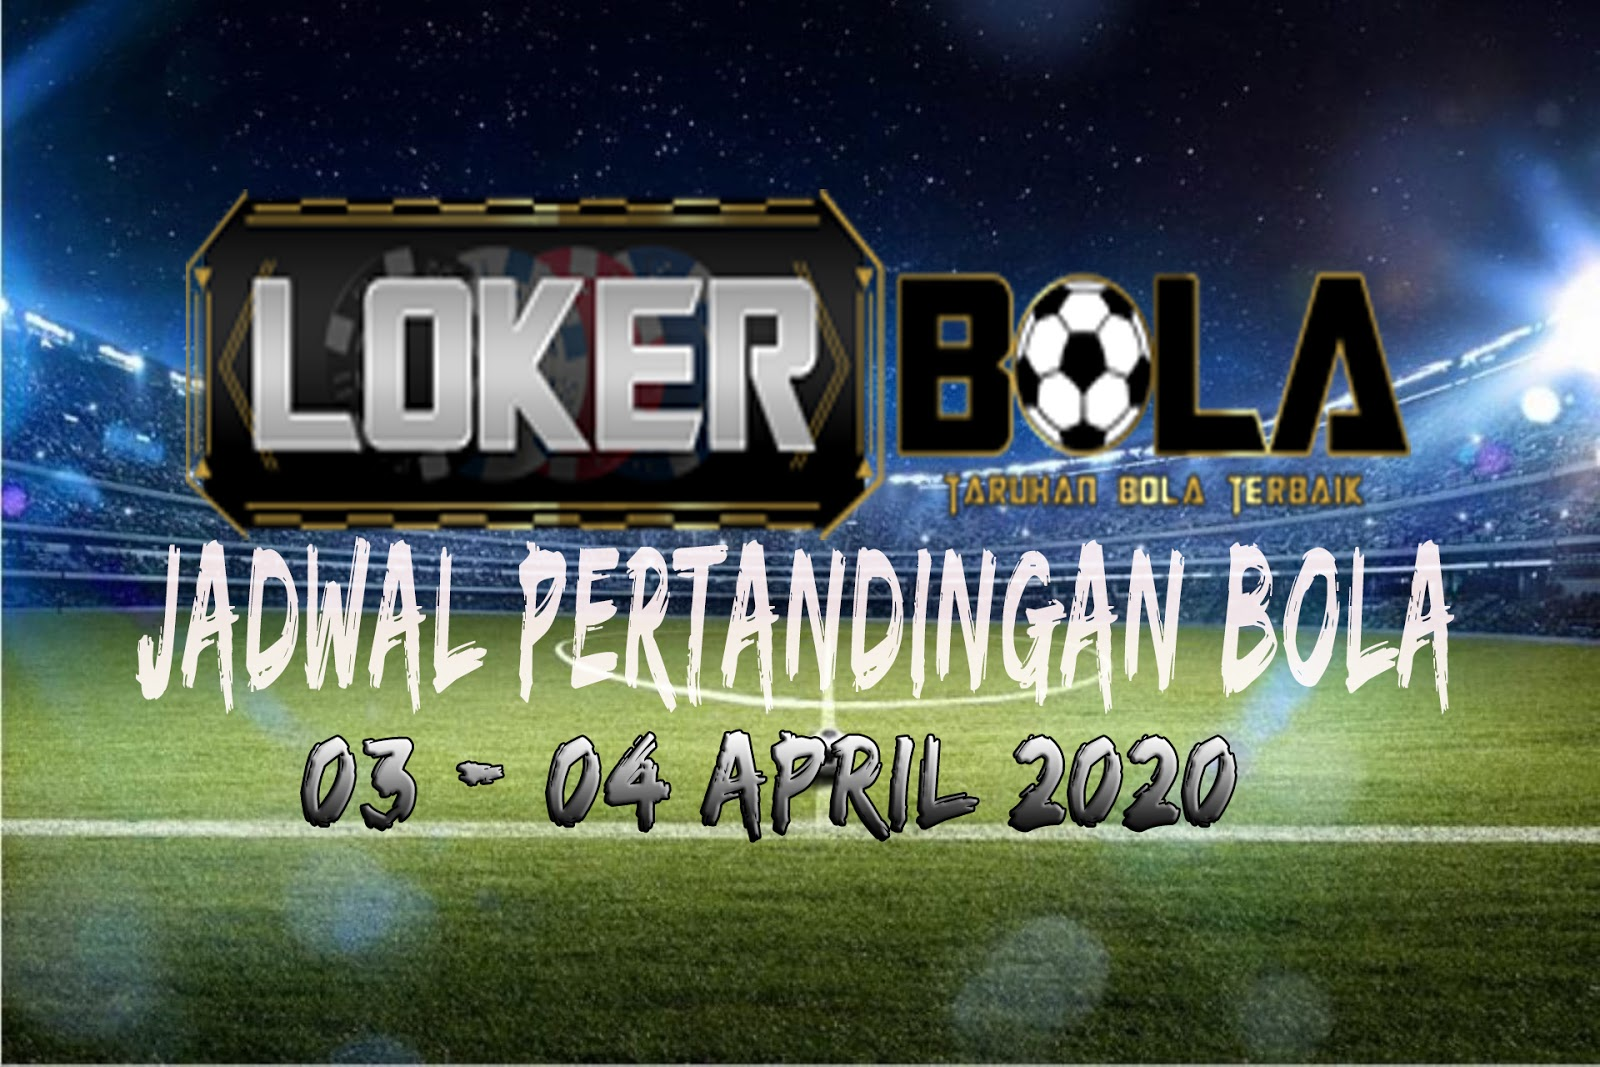 JADWAL PERTANDINGAN BOLA 03 – 04 APRIL 2020